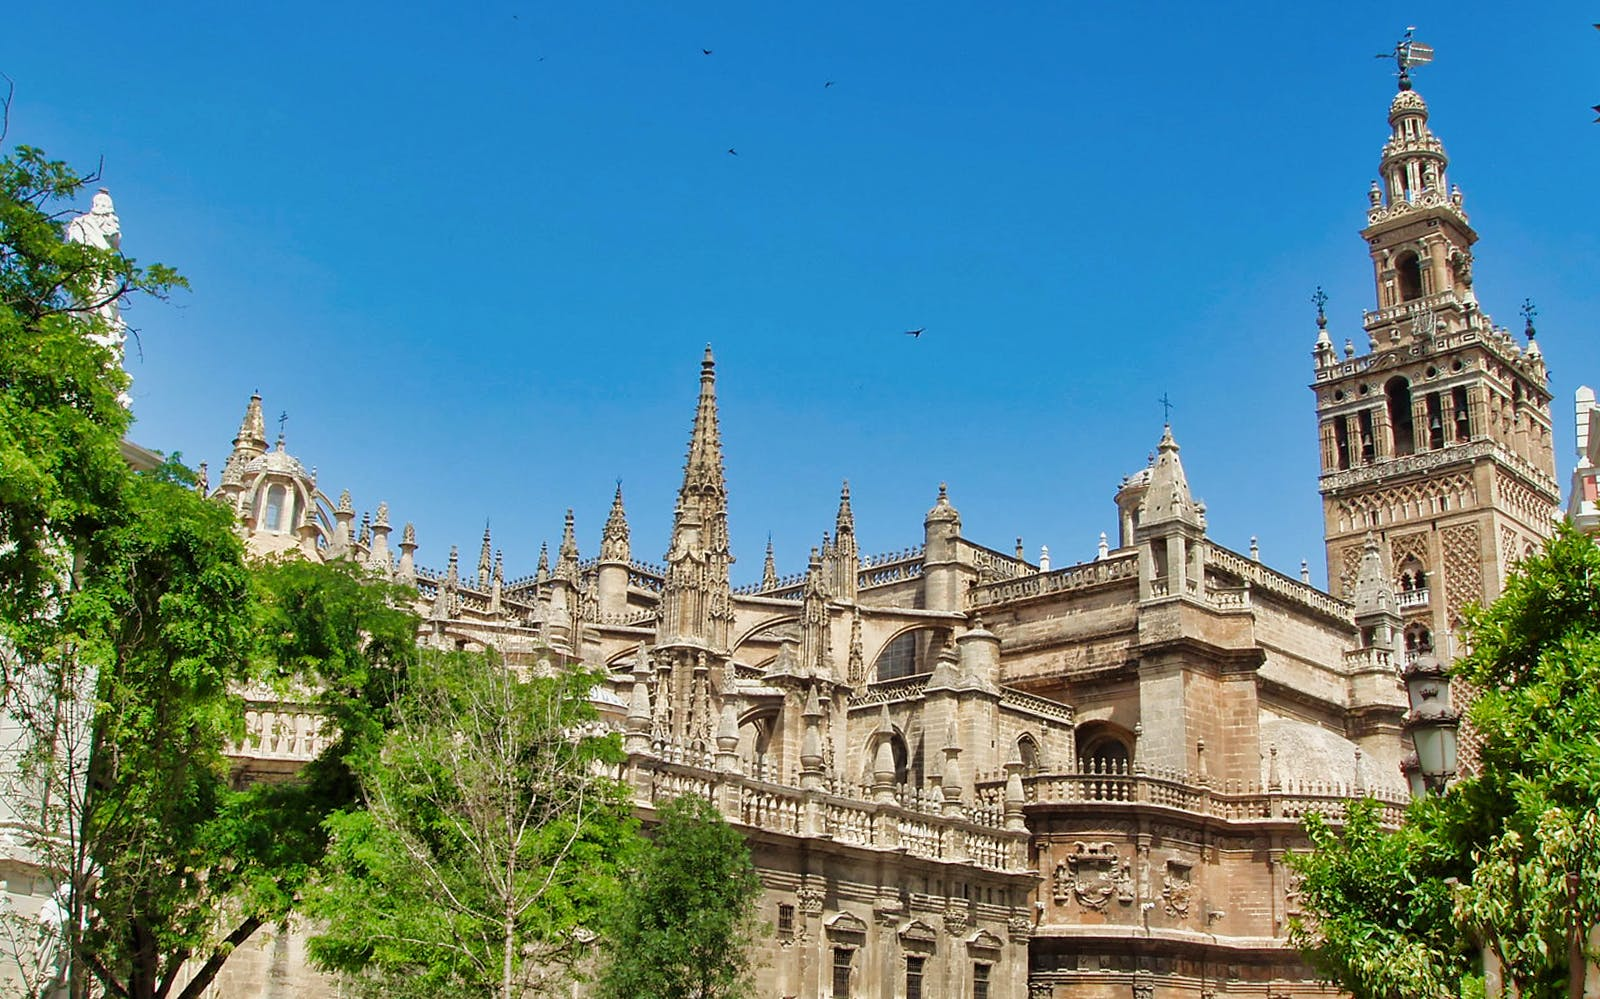 skip the line guided tour to cathedral & giralda towers-4